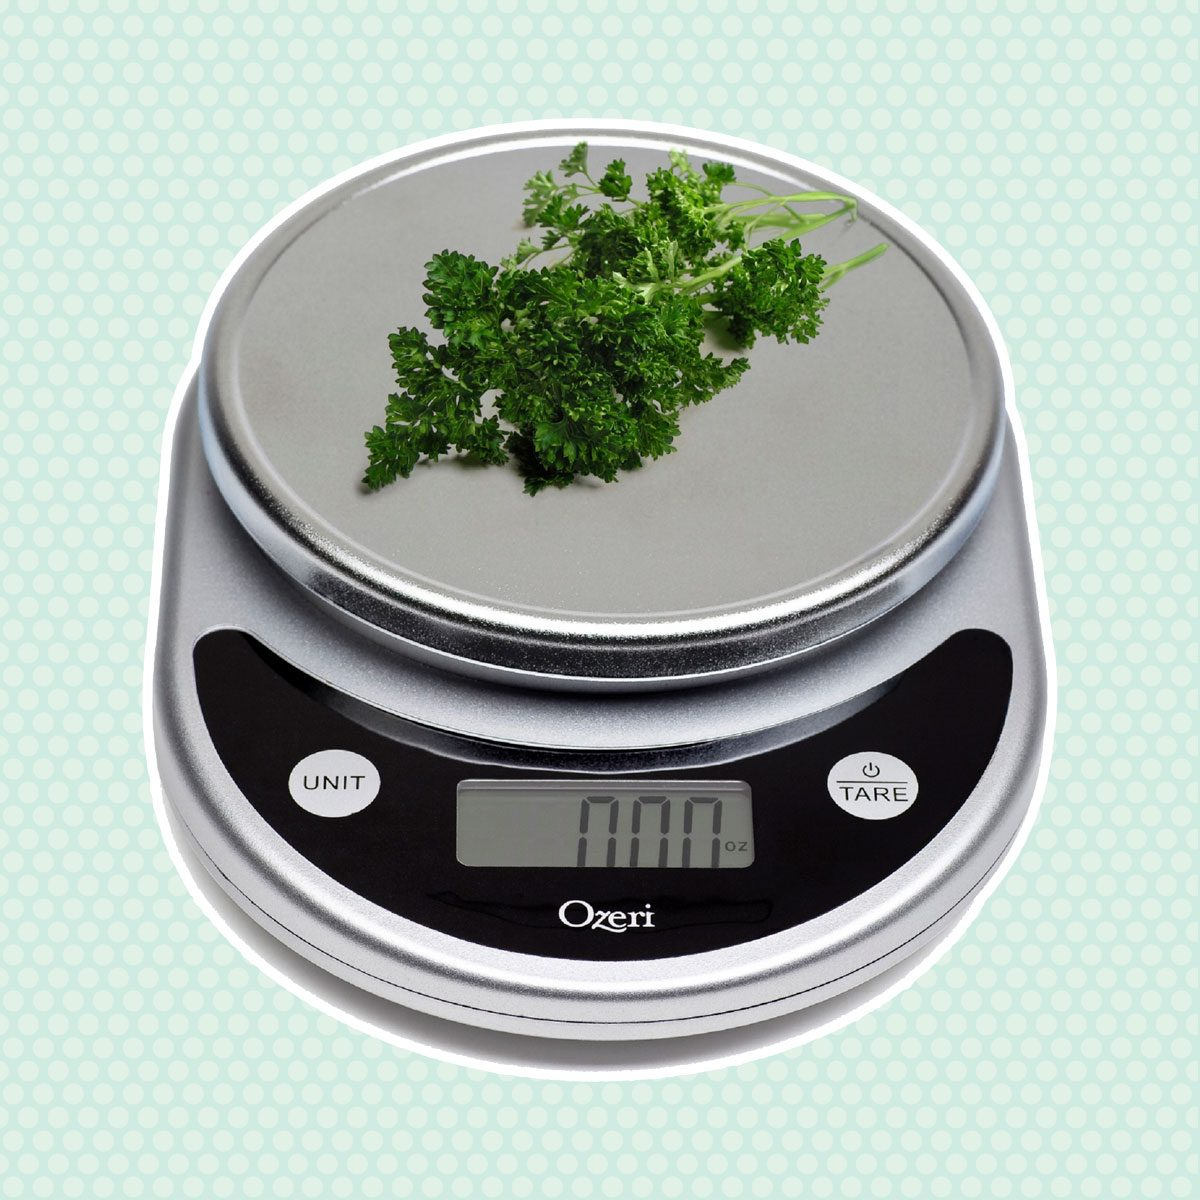 Ozeri ZK14 Pronto Digital Multifunction Kitchen and Food Scale